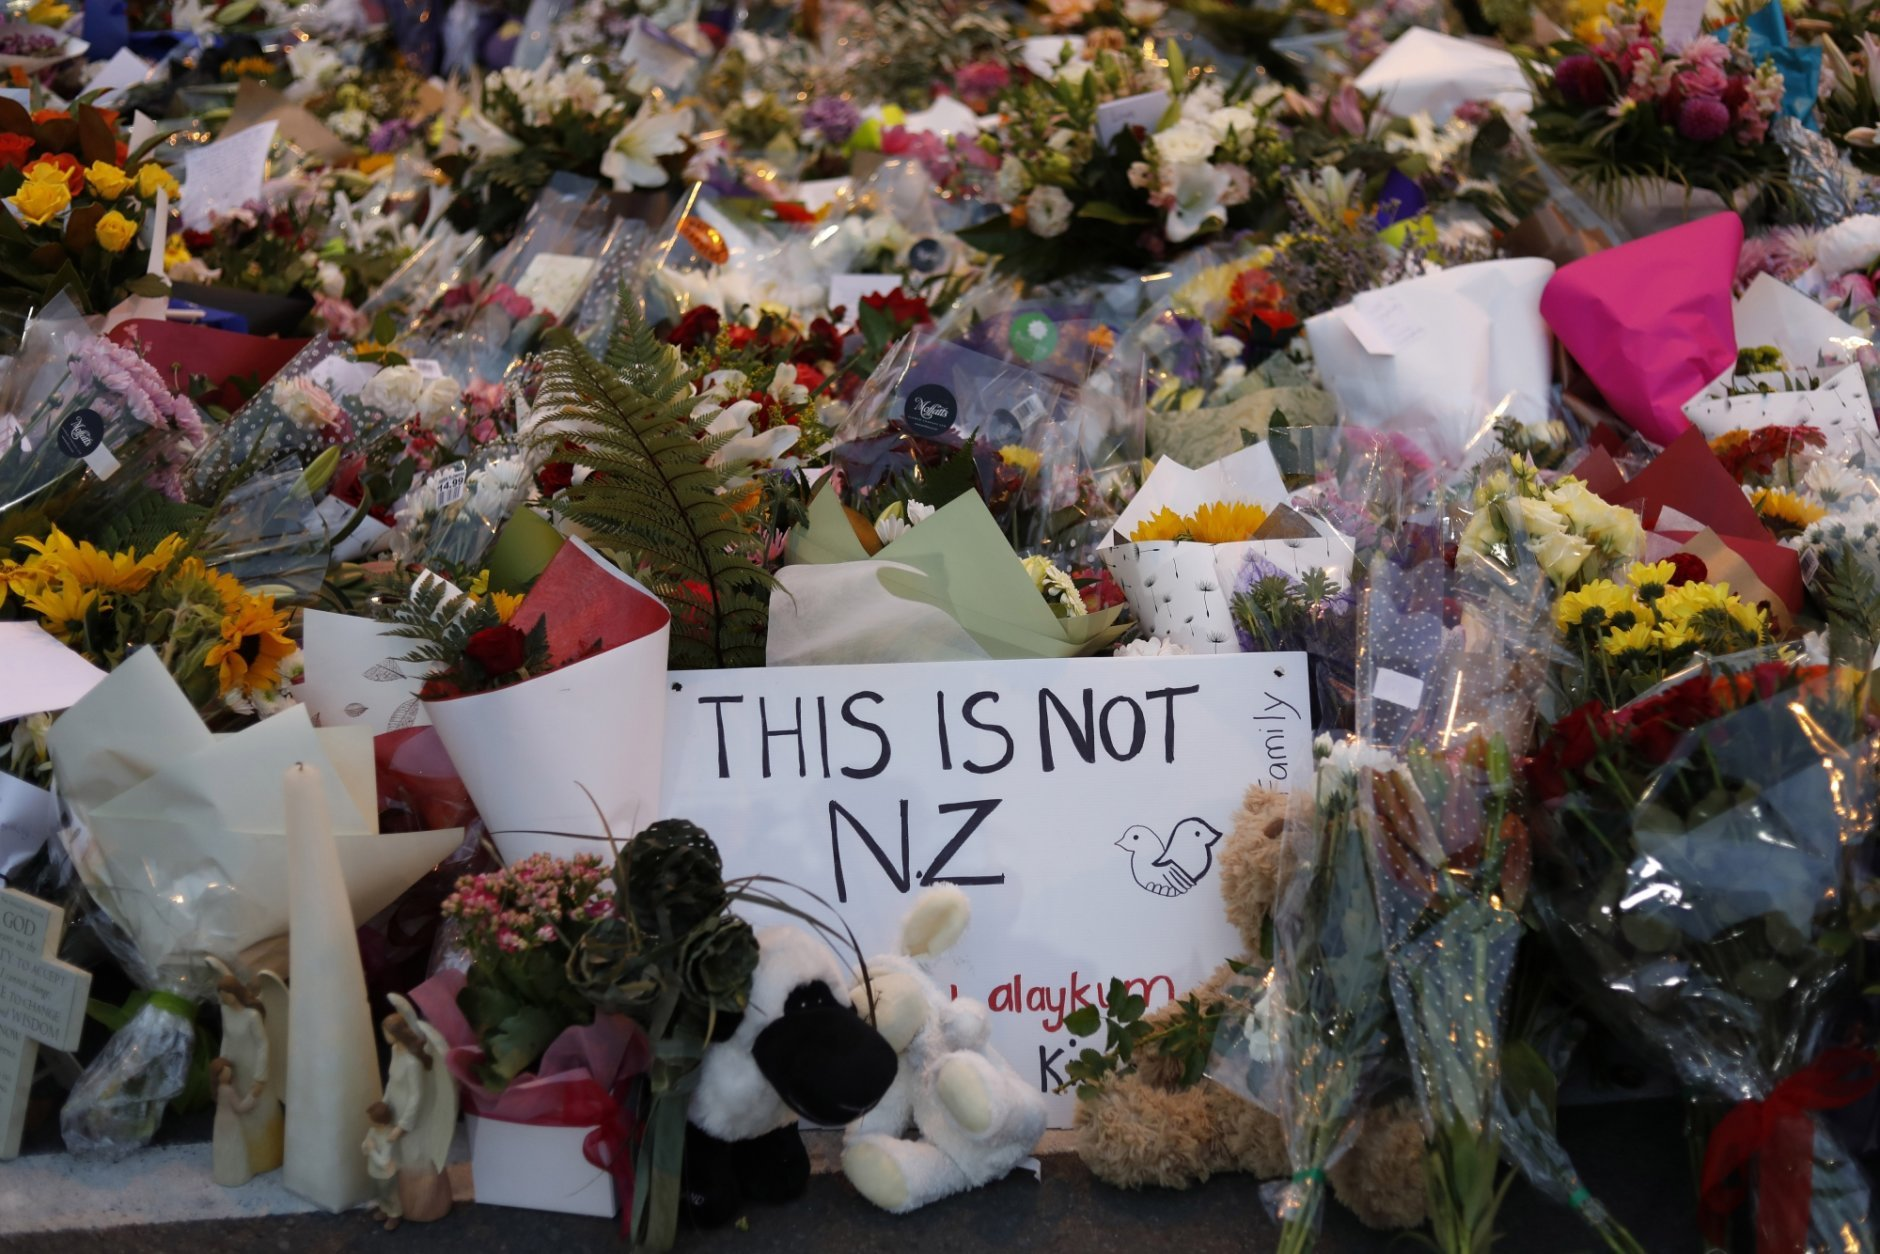 In this Saturday, March 16, 2019, file photo, flowers lay at a memorial near the Masjid Al Noor mosque for victims in last week's shooting in Christchurch, New Zealand. The leafy New Zealand city where a self-proclaimed racist fatally shot 50 people at mosques during Friday prayers is known for its picturesque meandering river and English heritage. For decades, the southern city of Christchurch also has been the center of the country's small but persistent white supremacist movement. (AP Photo/Vincent Yu, File)